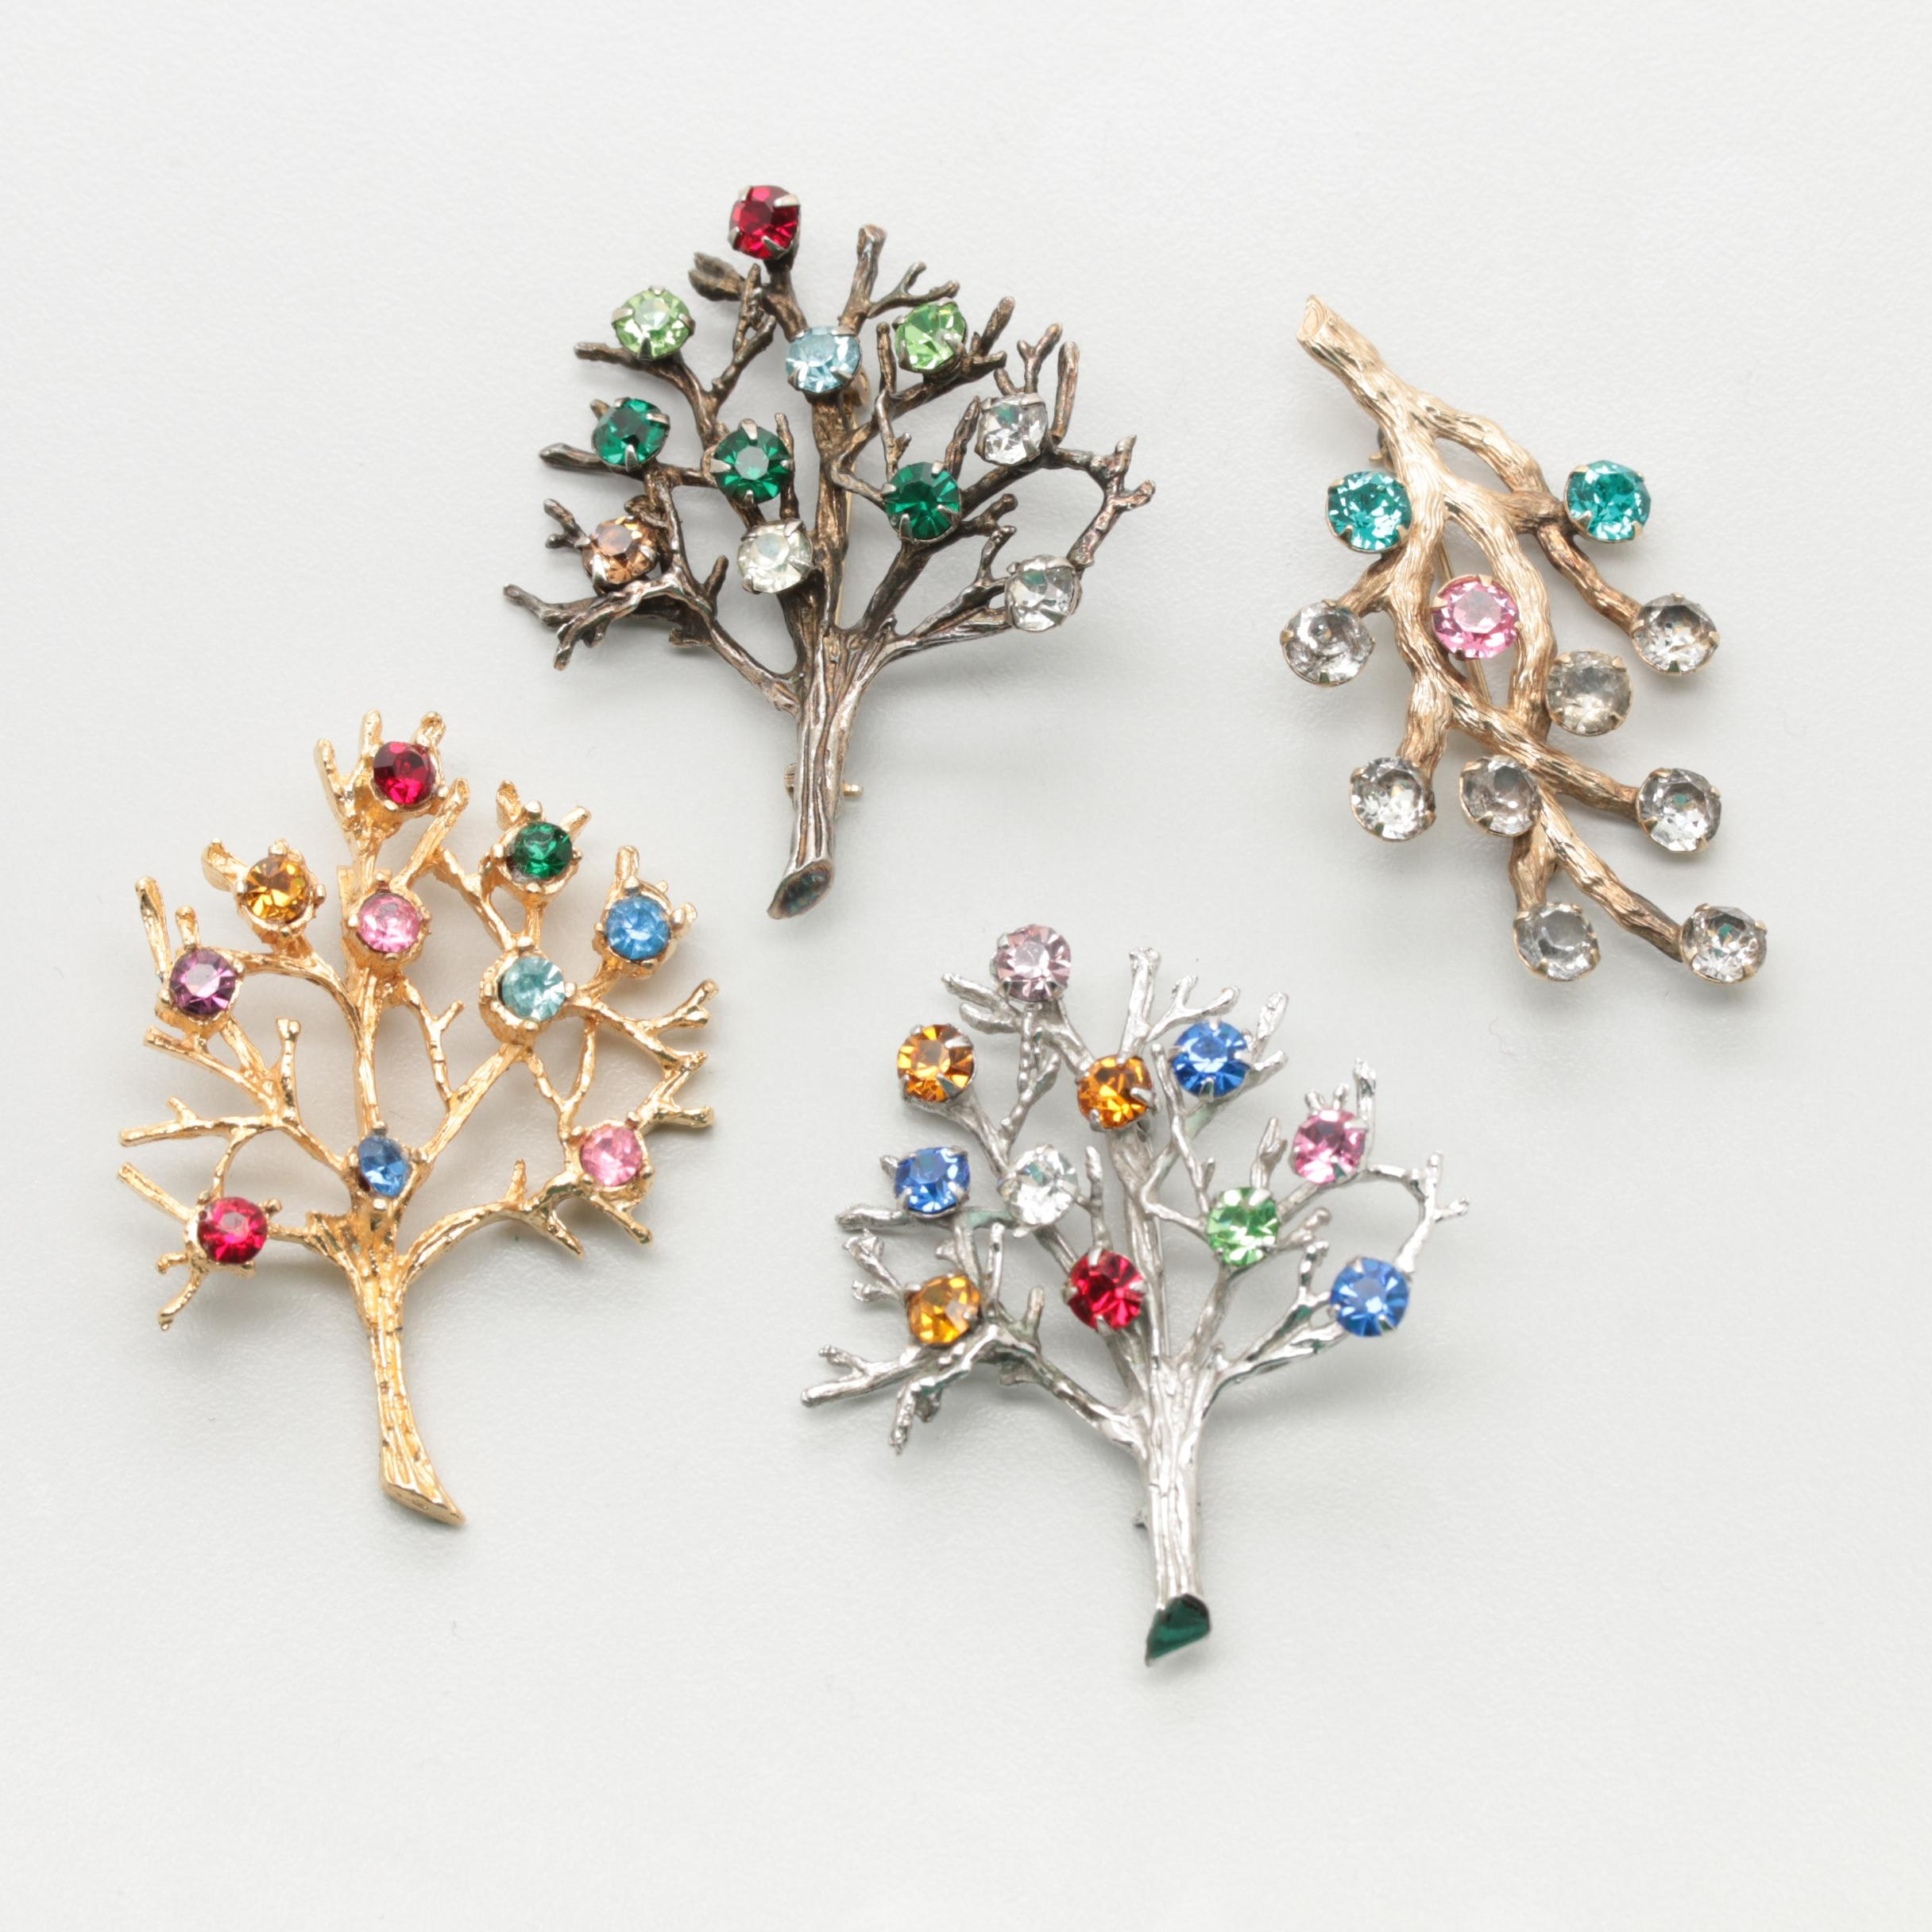 Collection of Vintage Brutalist Rhinestone Tree Brooches Including Van Dell, DE